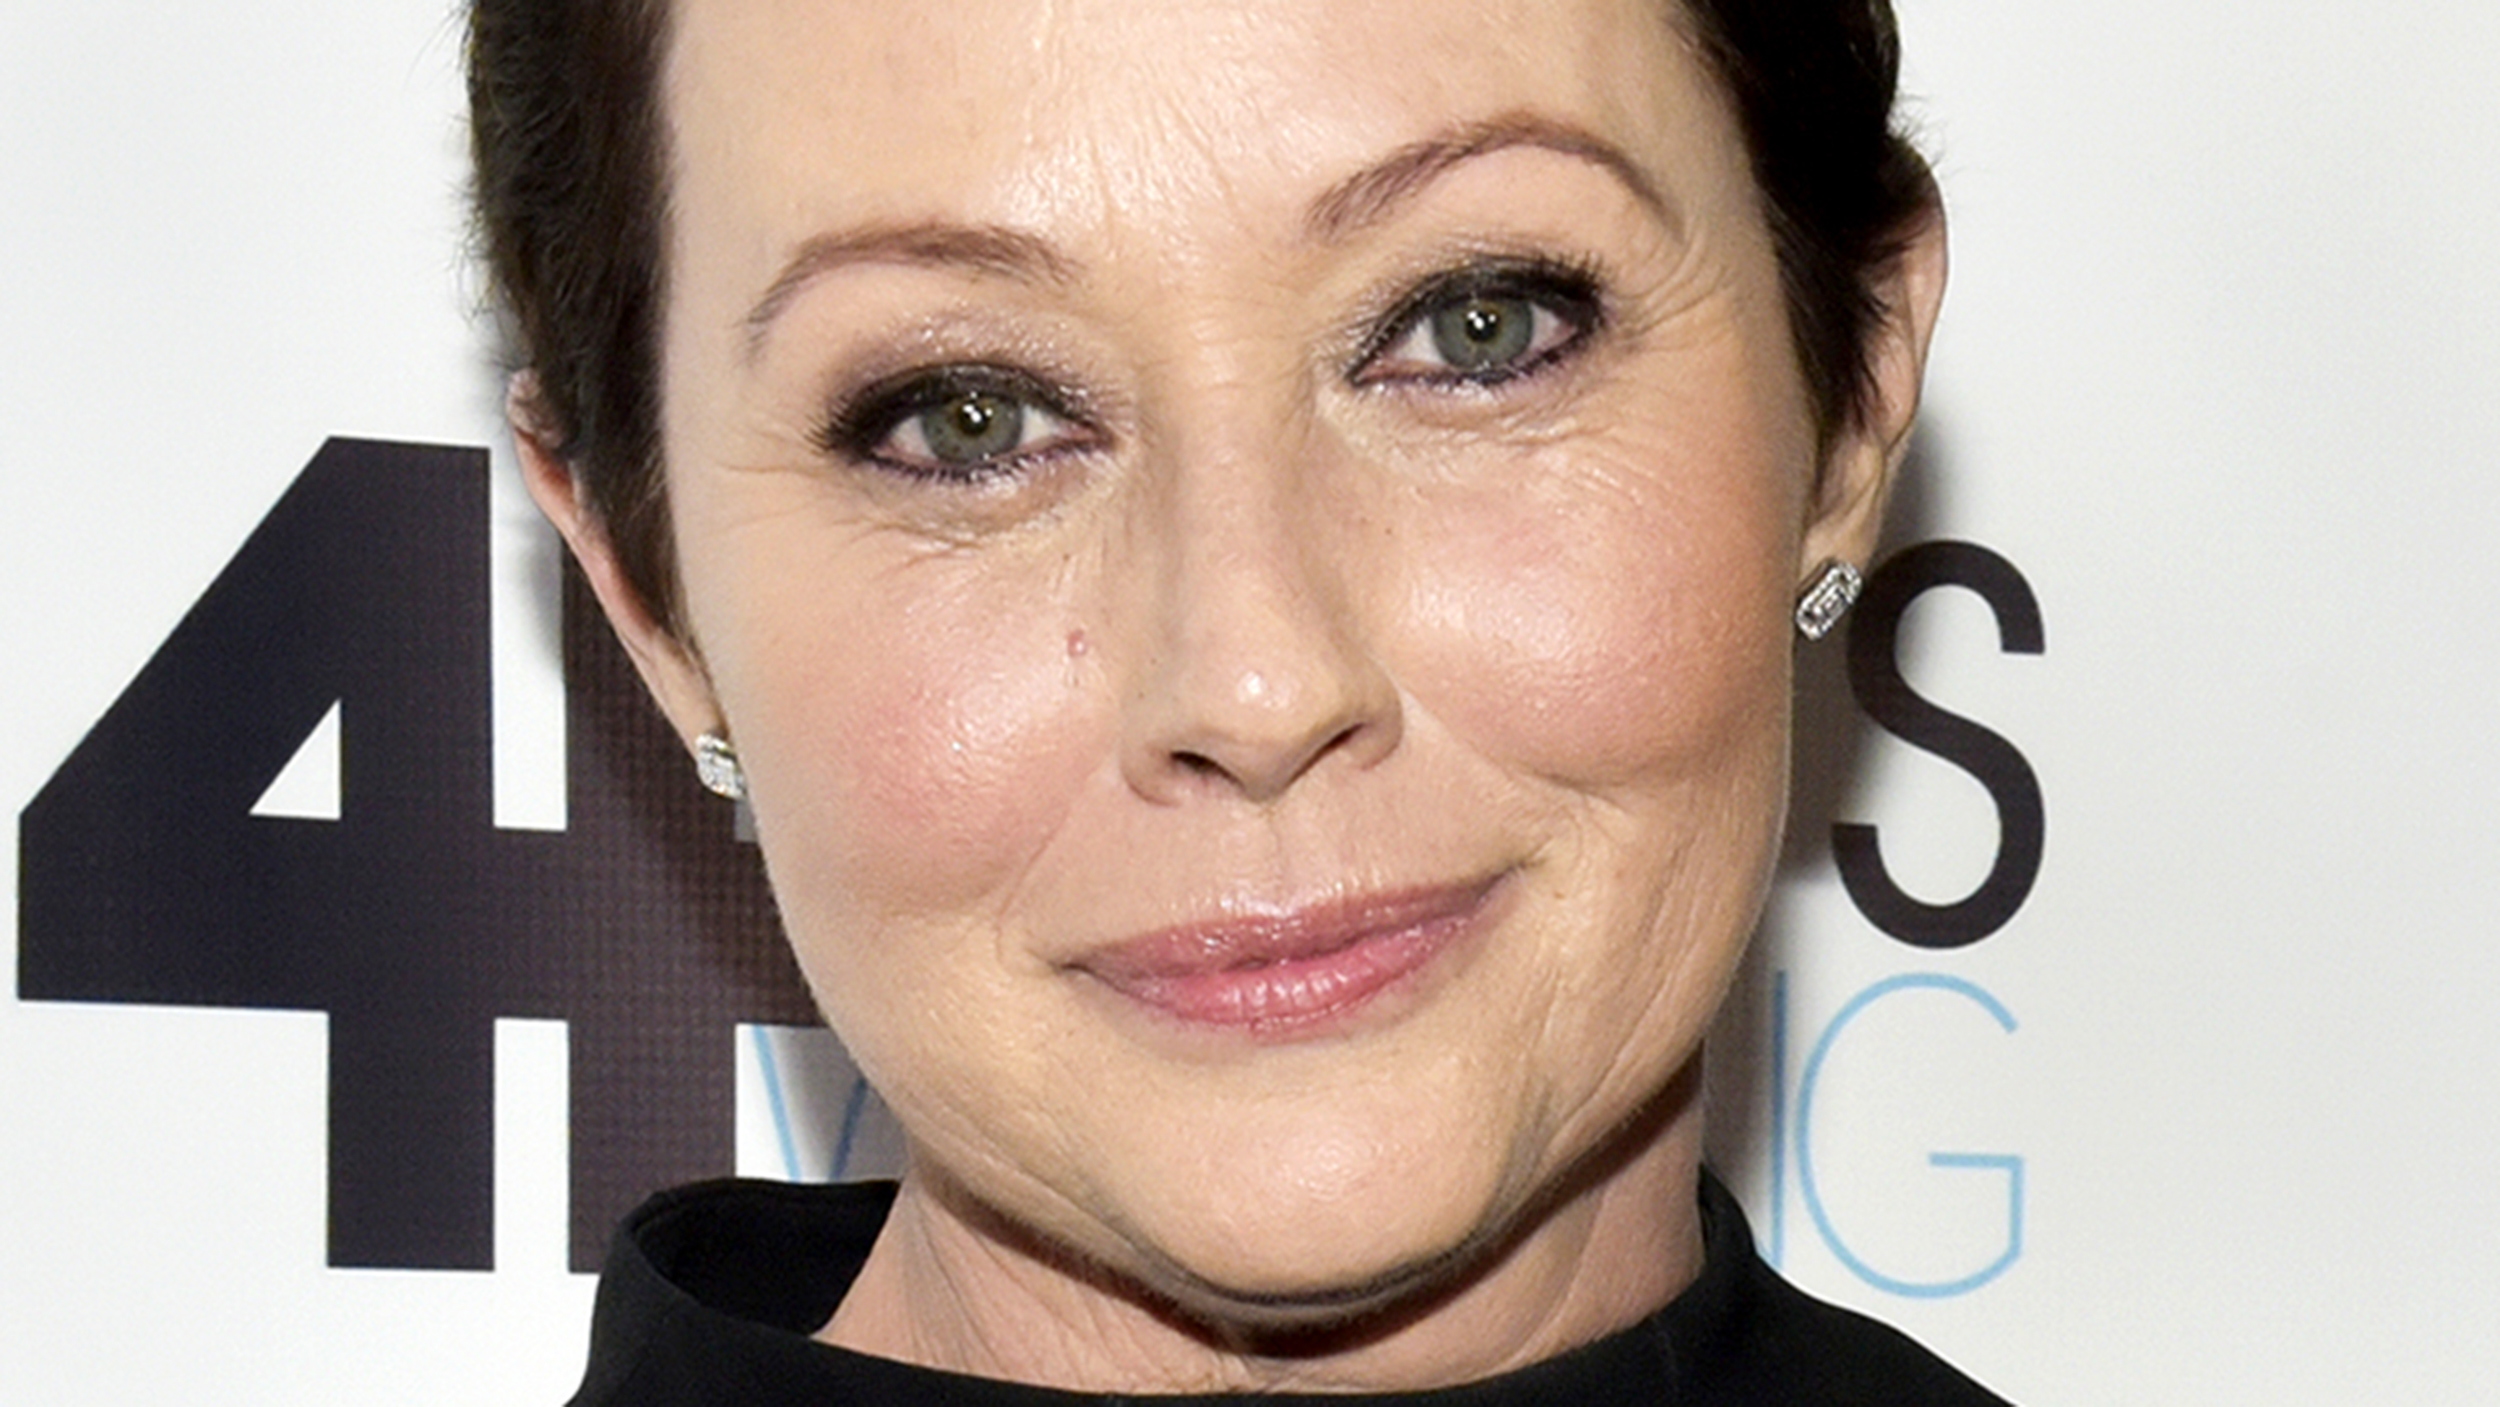 ICloud Shannen Doherty nude (79 photos), Sexy, Hot, Feet, braless 2006